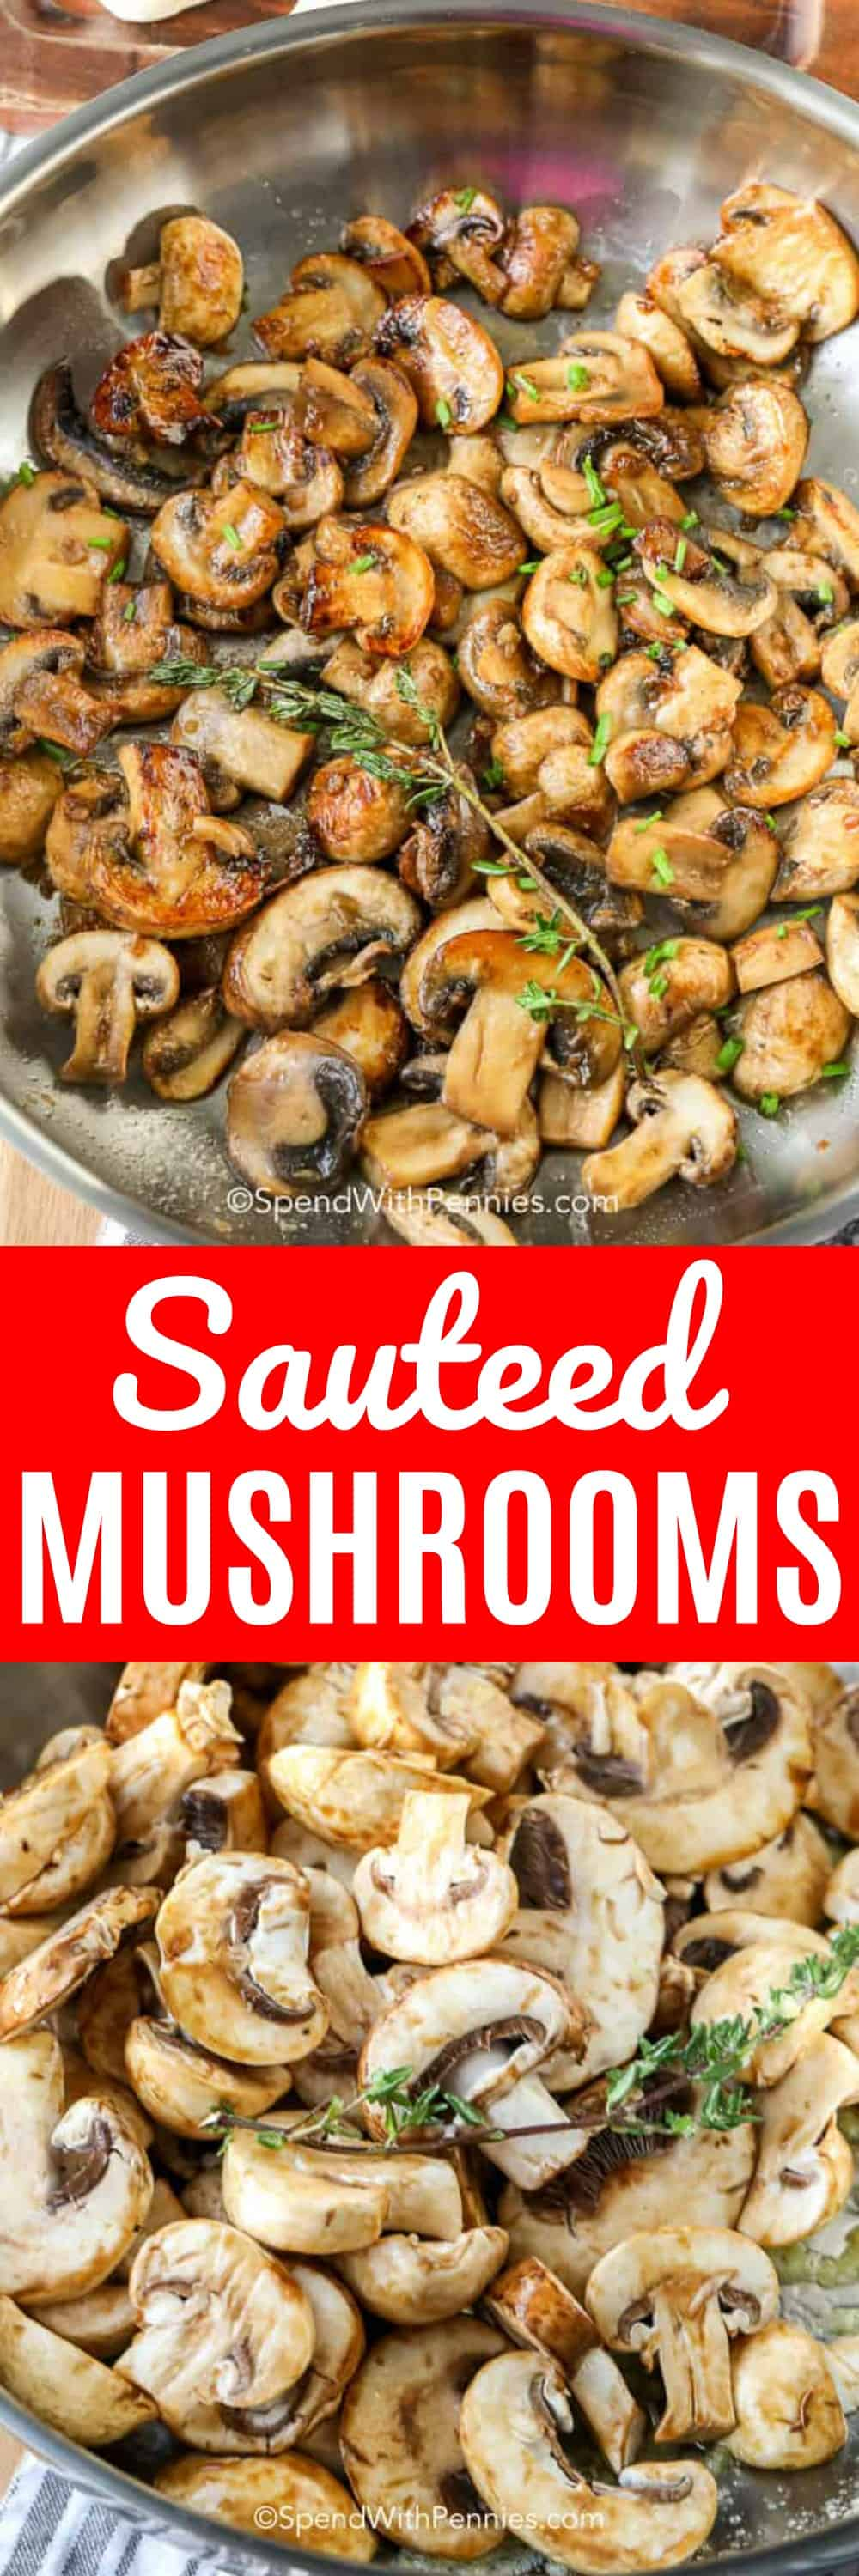 Sauteed Mushrooms with Garlic with writing